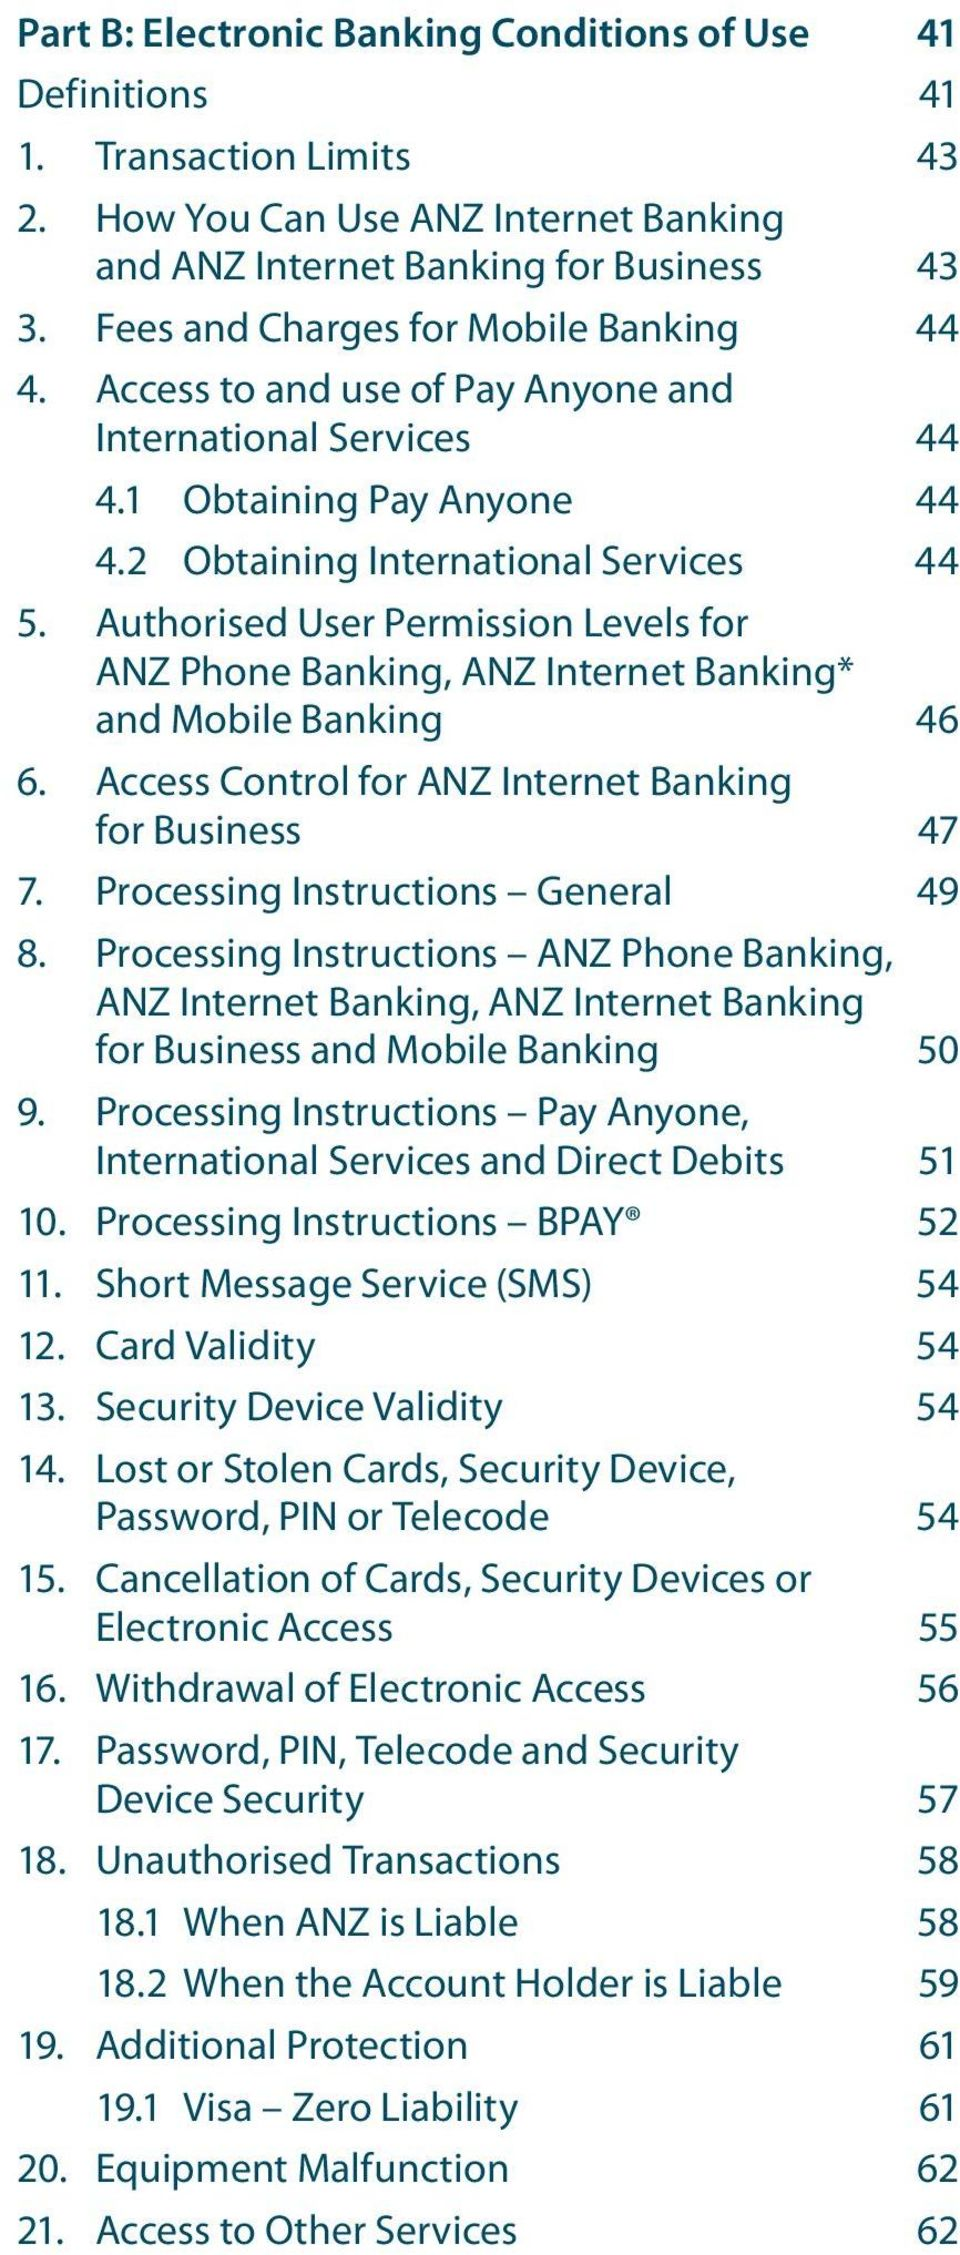 Authorised User Permission Levels for ANZ Phone Banking, ANZ Internet Banking* and Mobile Banking 46 6. Access Control for ANZ Internet Banking for Business 47 7. Processing Instructions General 49 8.